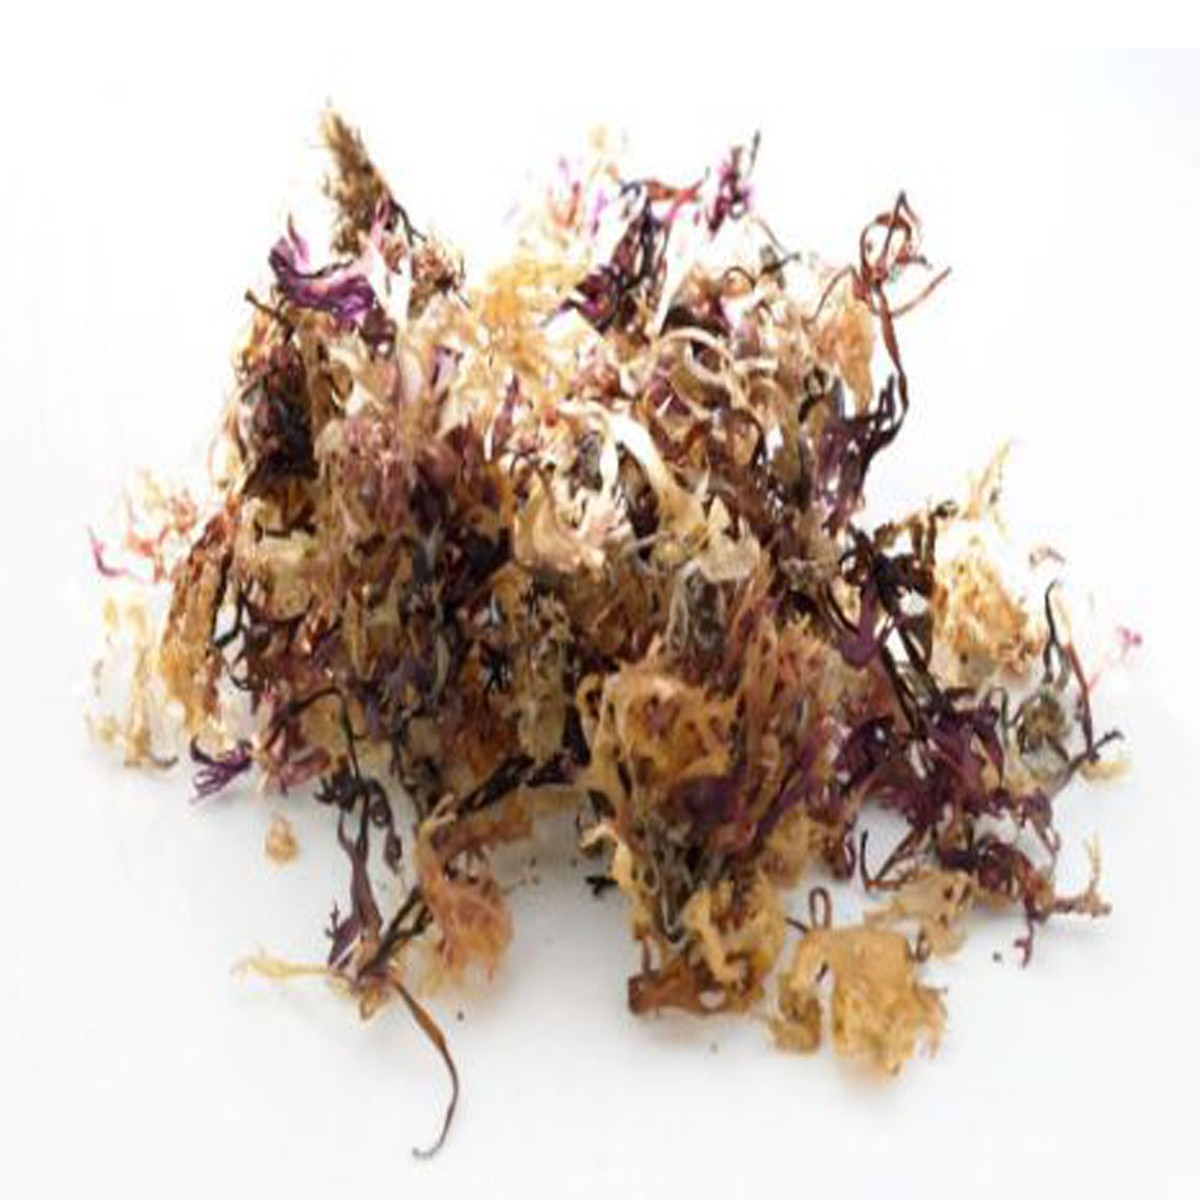 Irish Sea Moss Carrageen Chondus Chrispus Wild Harvested